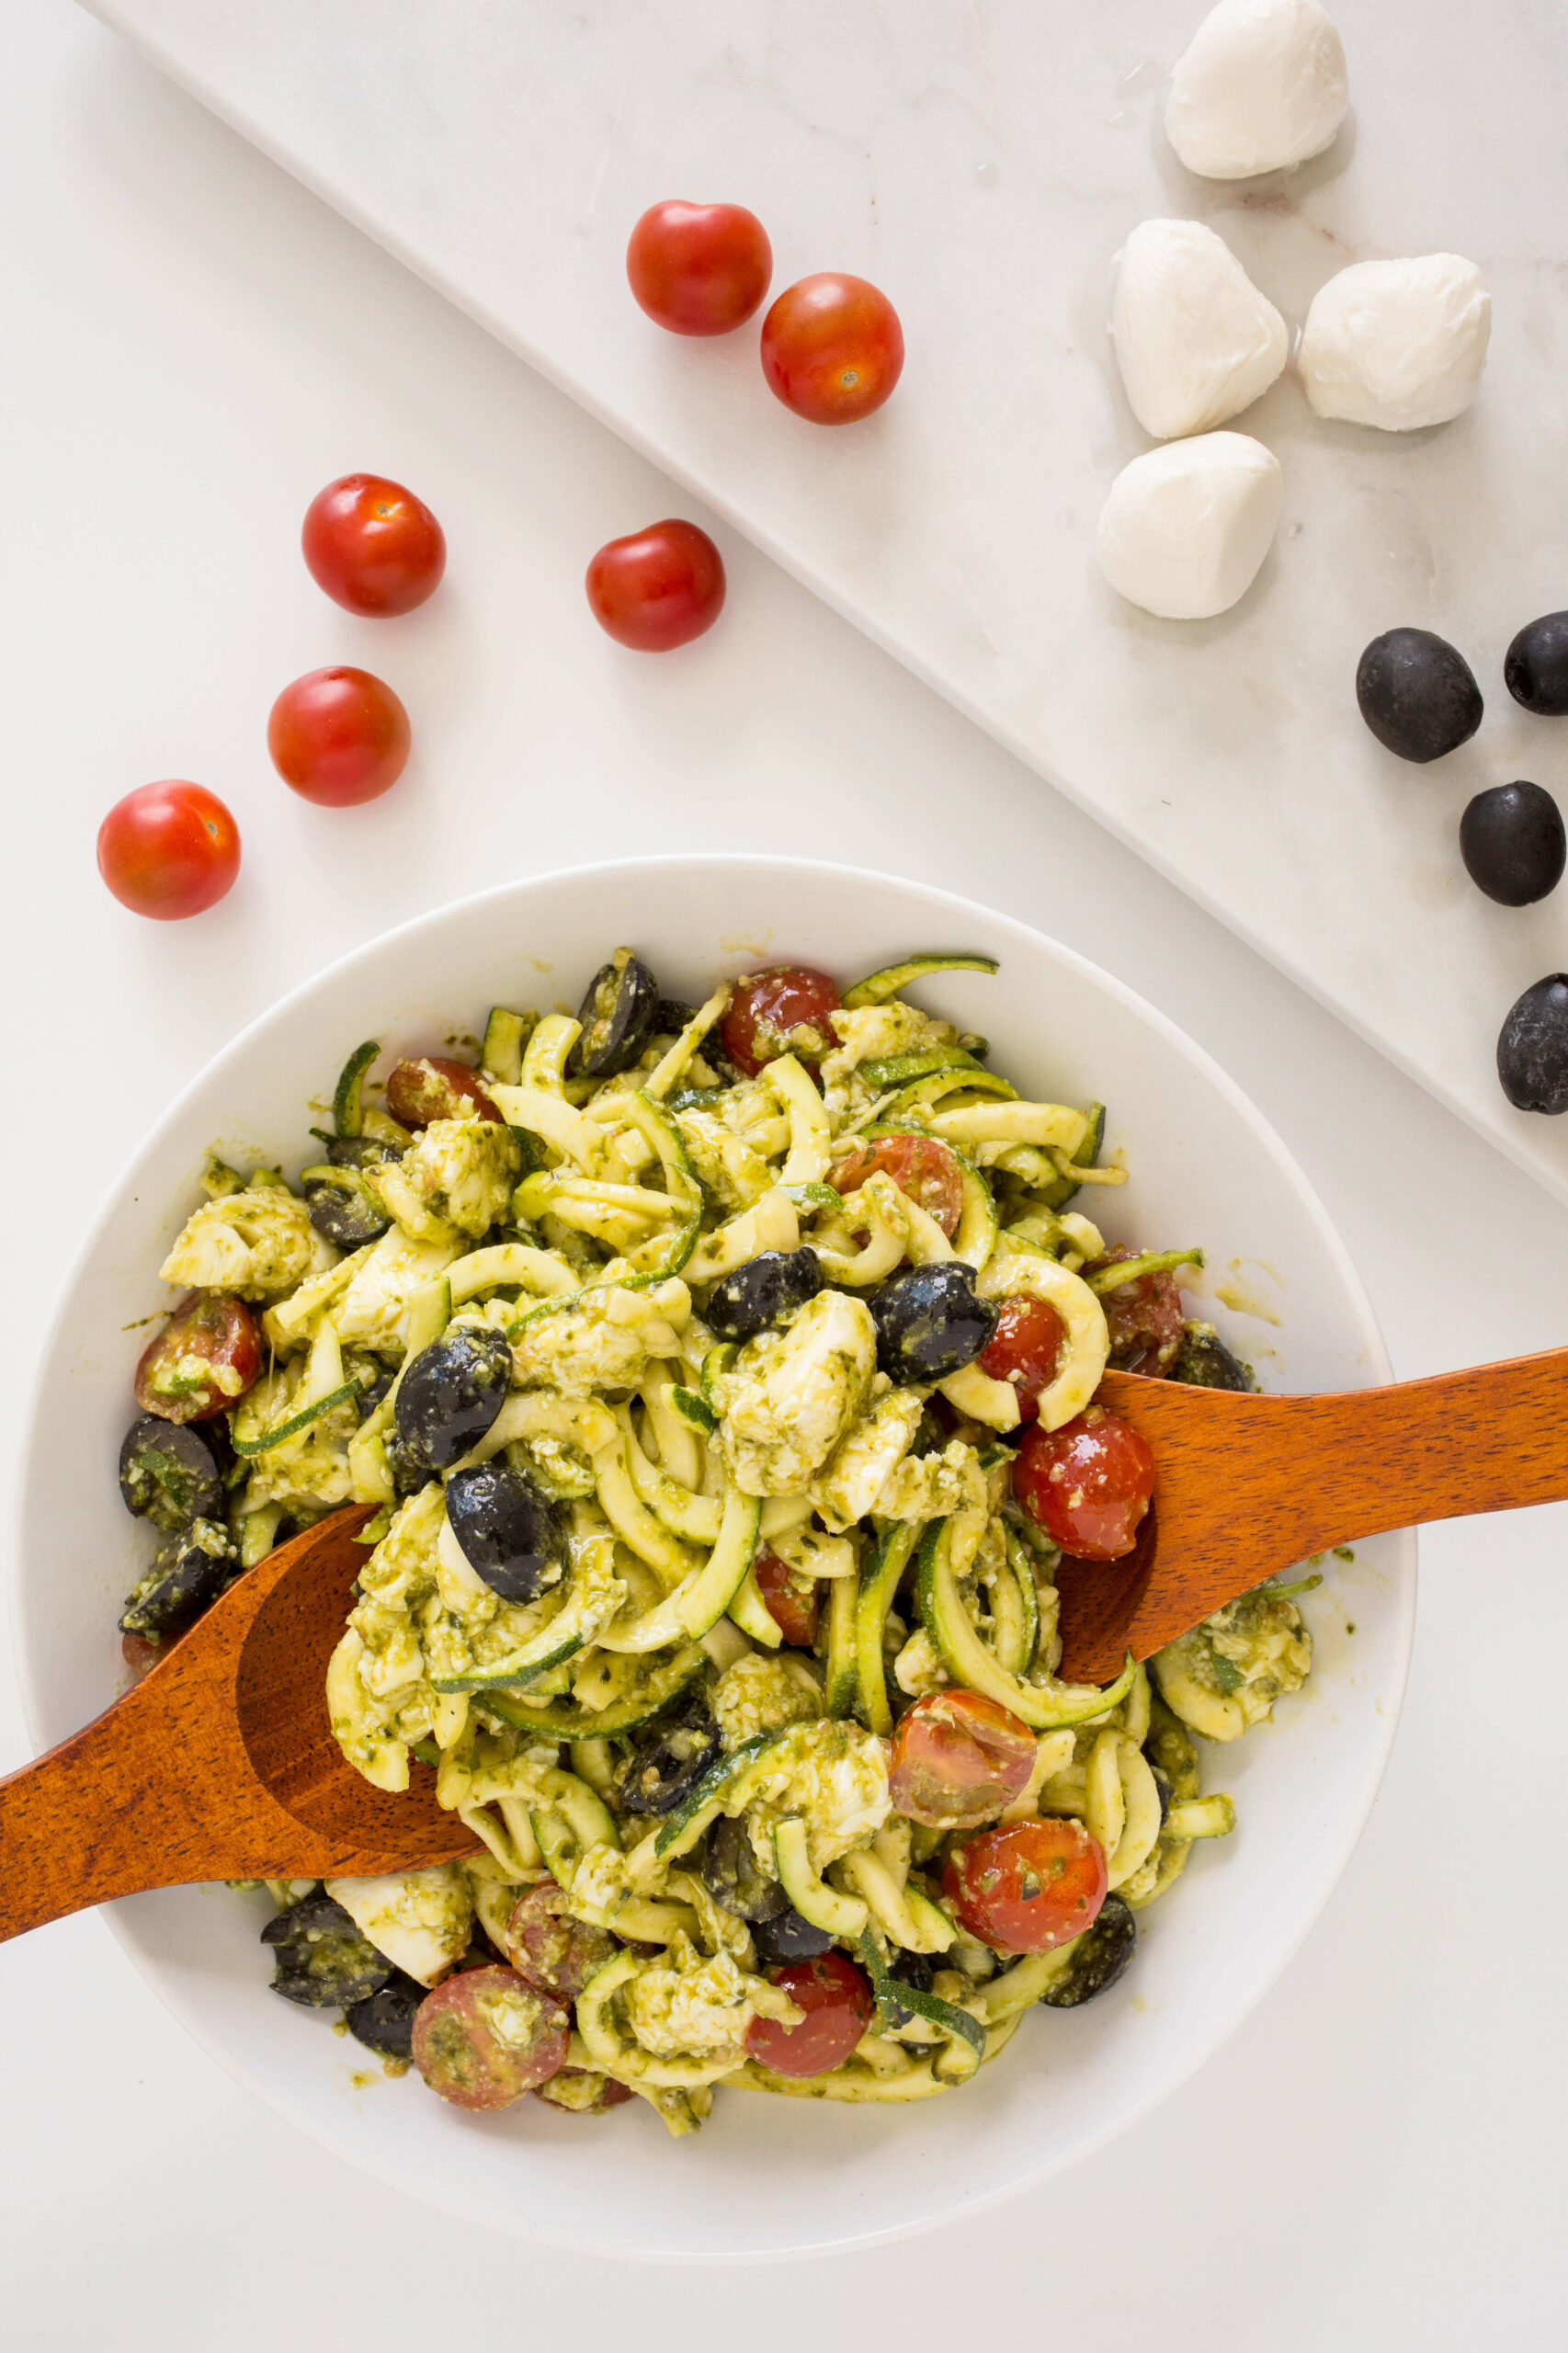 Mozzarella, Tomato and Pesto Zucchini Pasta Salad | Recipe ..